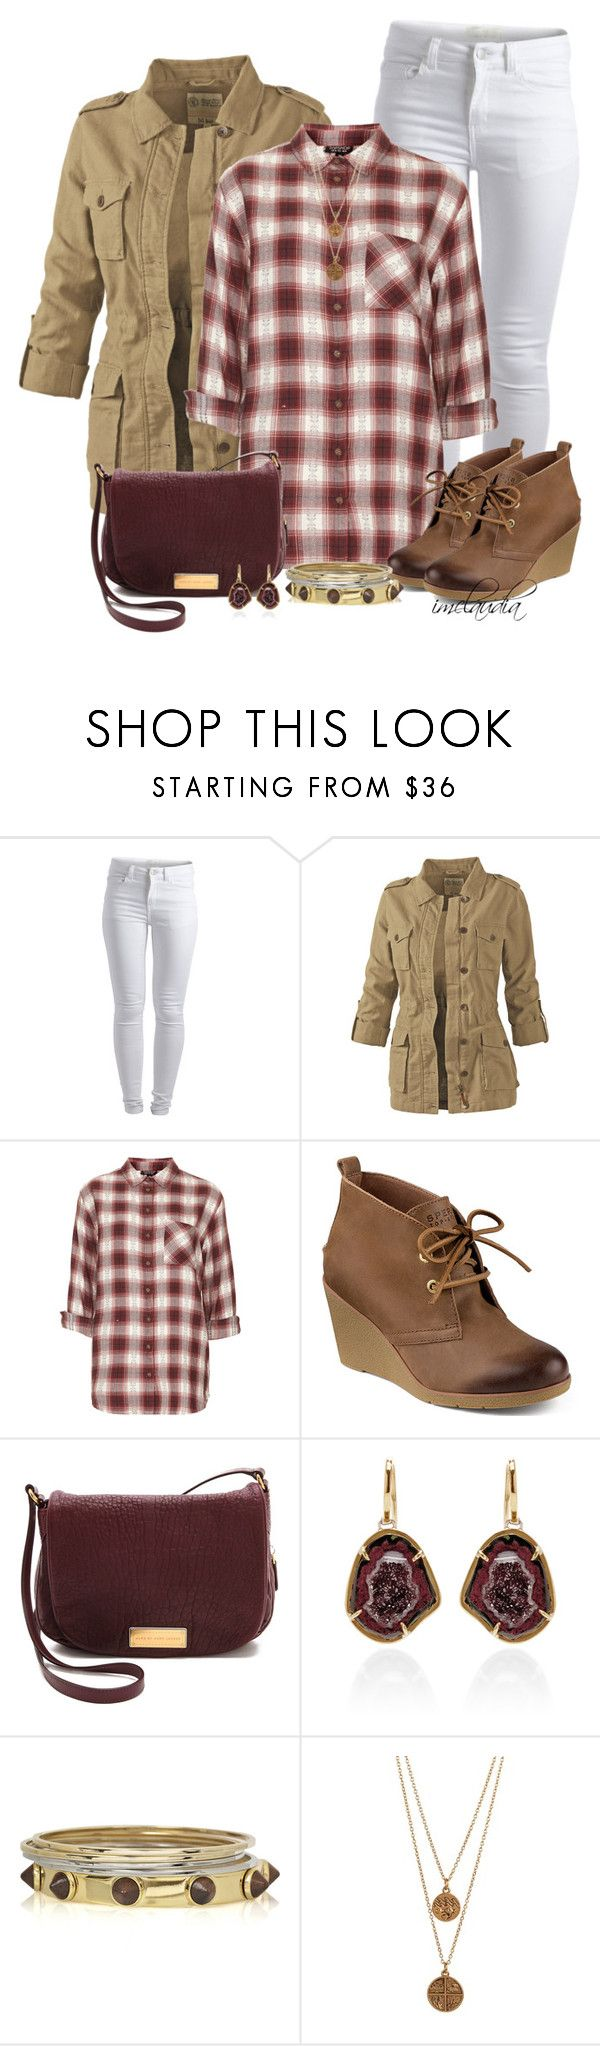 """""""Flannel Shirt and White Jeans"""" by imclaudia-1 ❤ liked on Polyvore featuring Pieces, Fat Face, Topshop, Sperry, Marc by Marc Jacobs, Kimberly McDonald, Fendi and Bee Charming"""